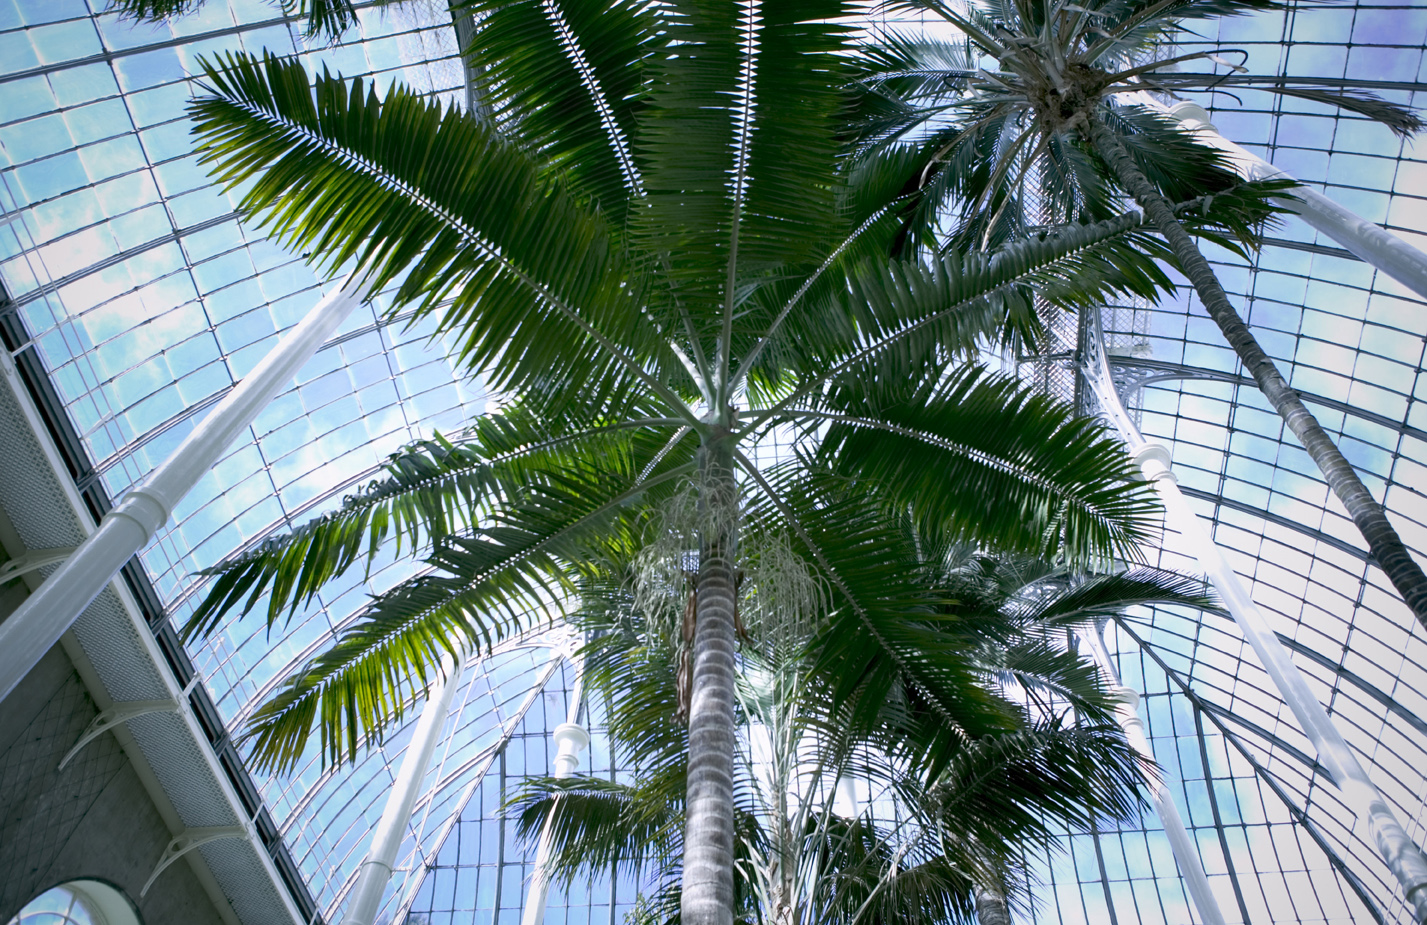 Palm tree in the Royal Botanic Gardens in Edinburgh